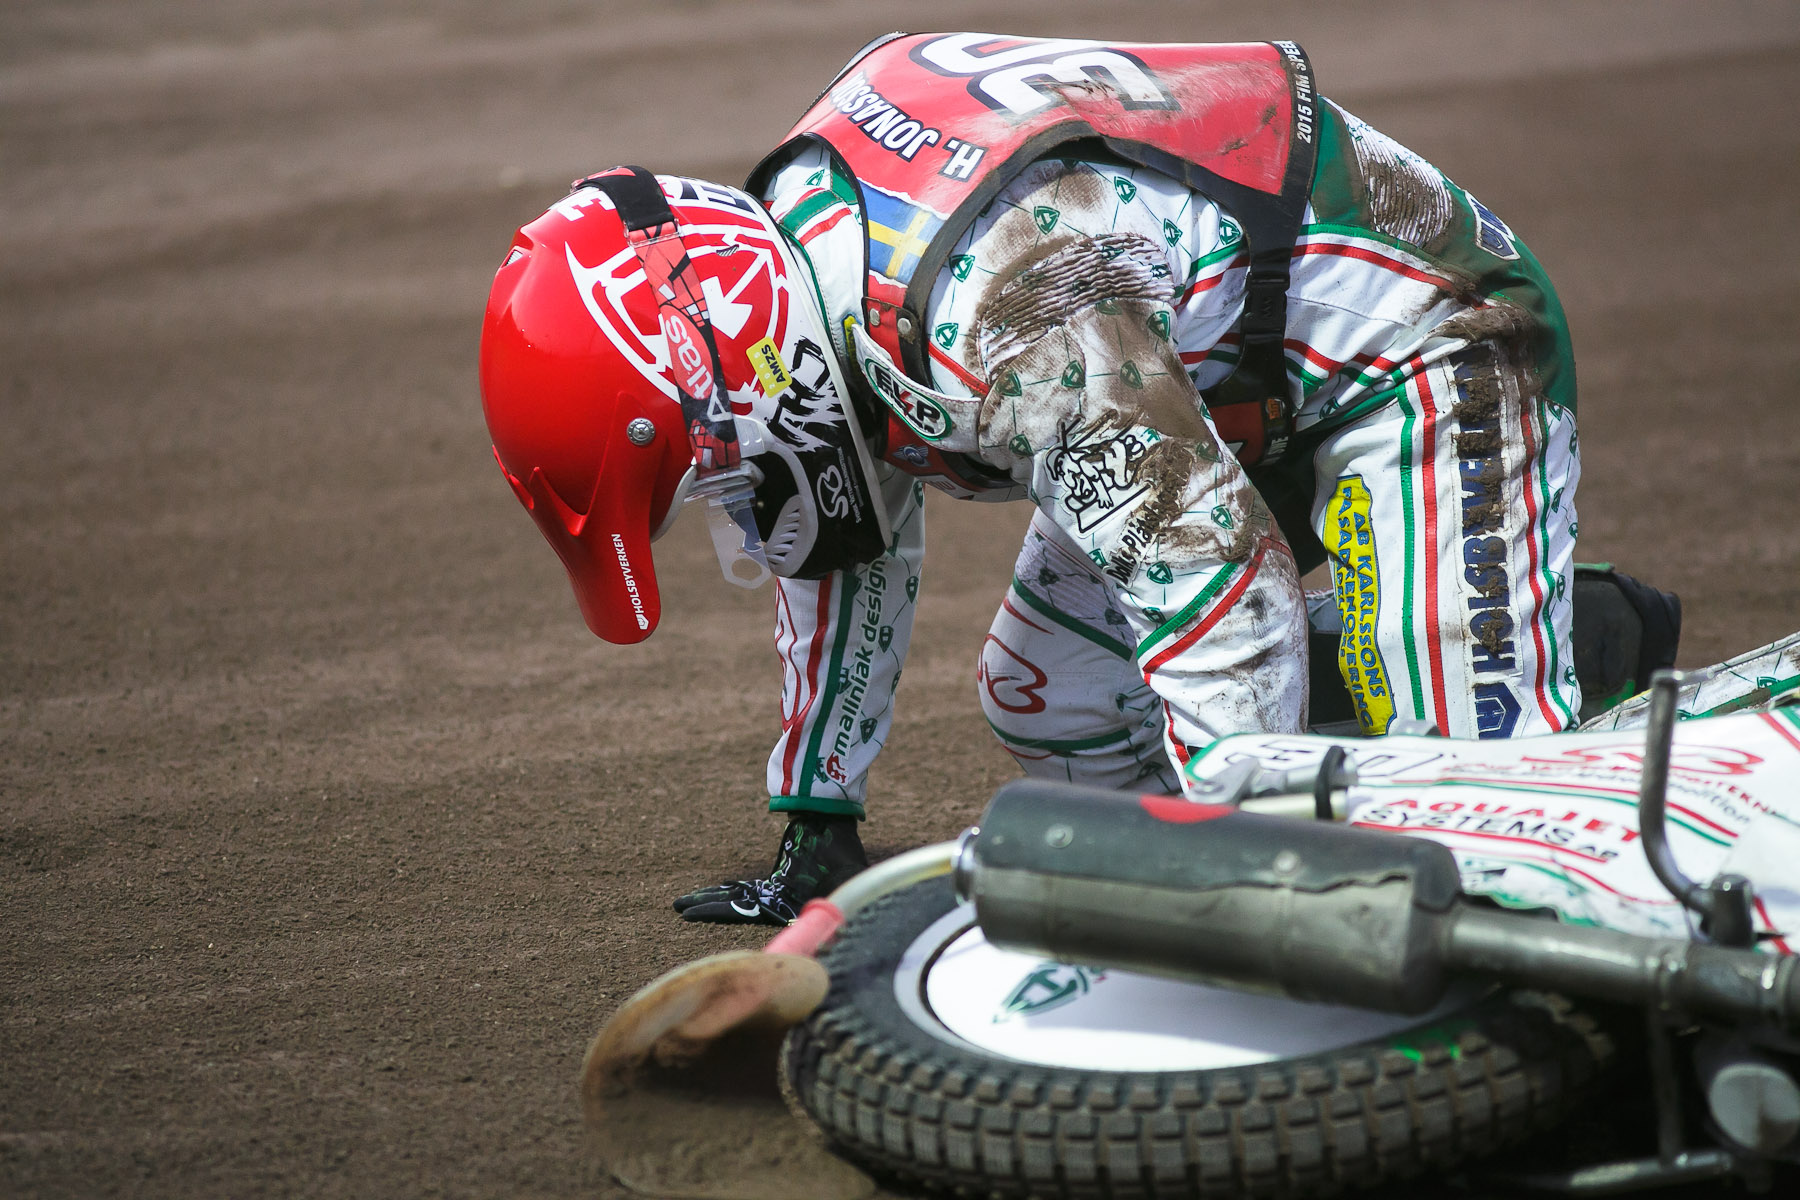 Tomas H. Jonasson of Sweden gets up after crashing during the Mitas Slovenian FIM Speedway Grand Prix at Matija Gubec Stadium in Krsko, Slovenia, Sep. 12, 2015.